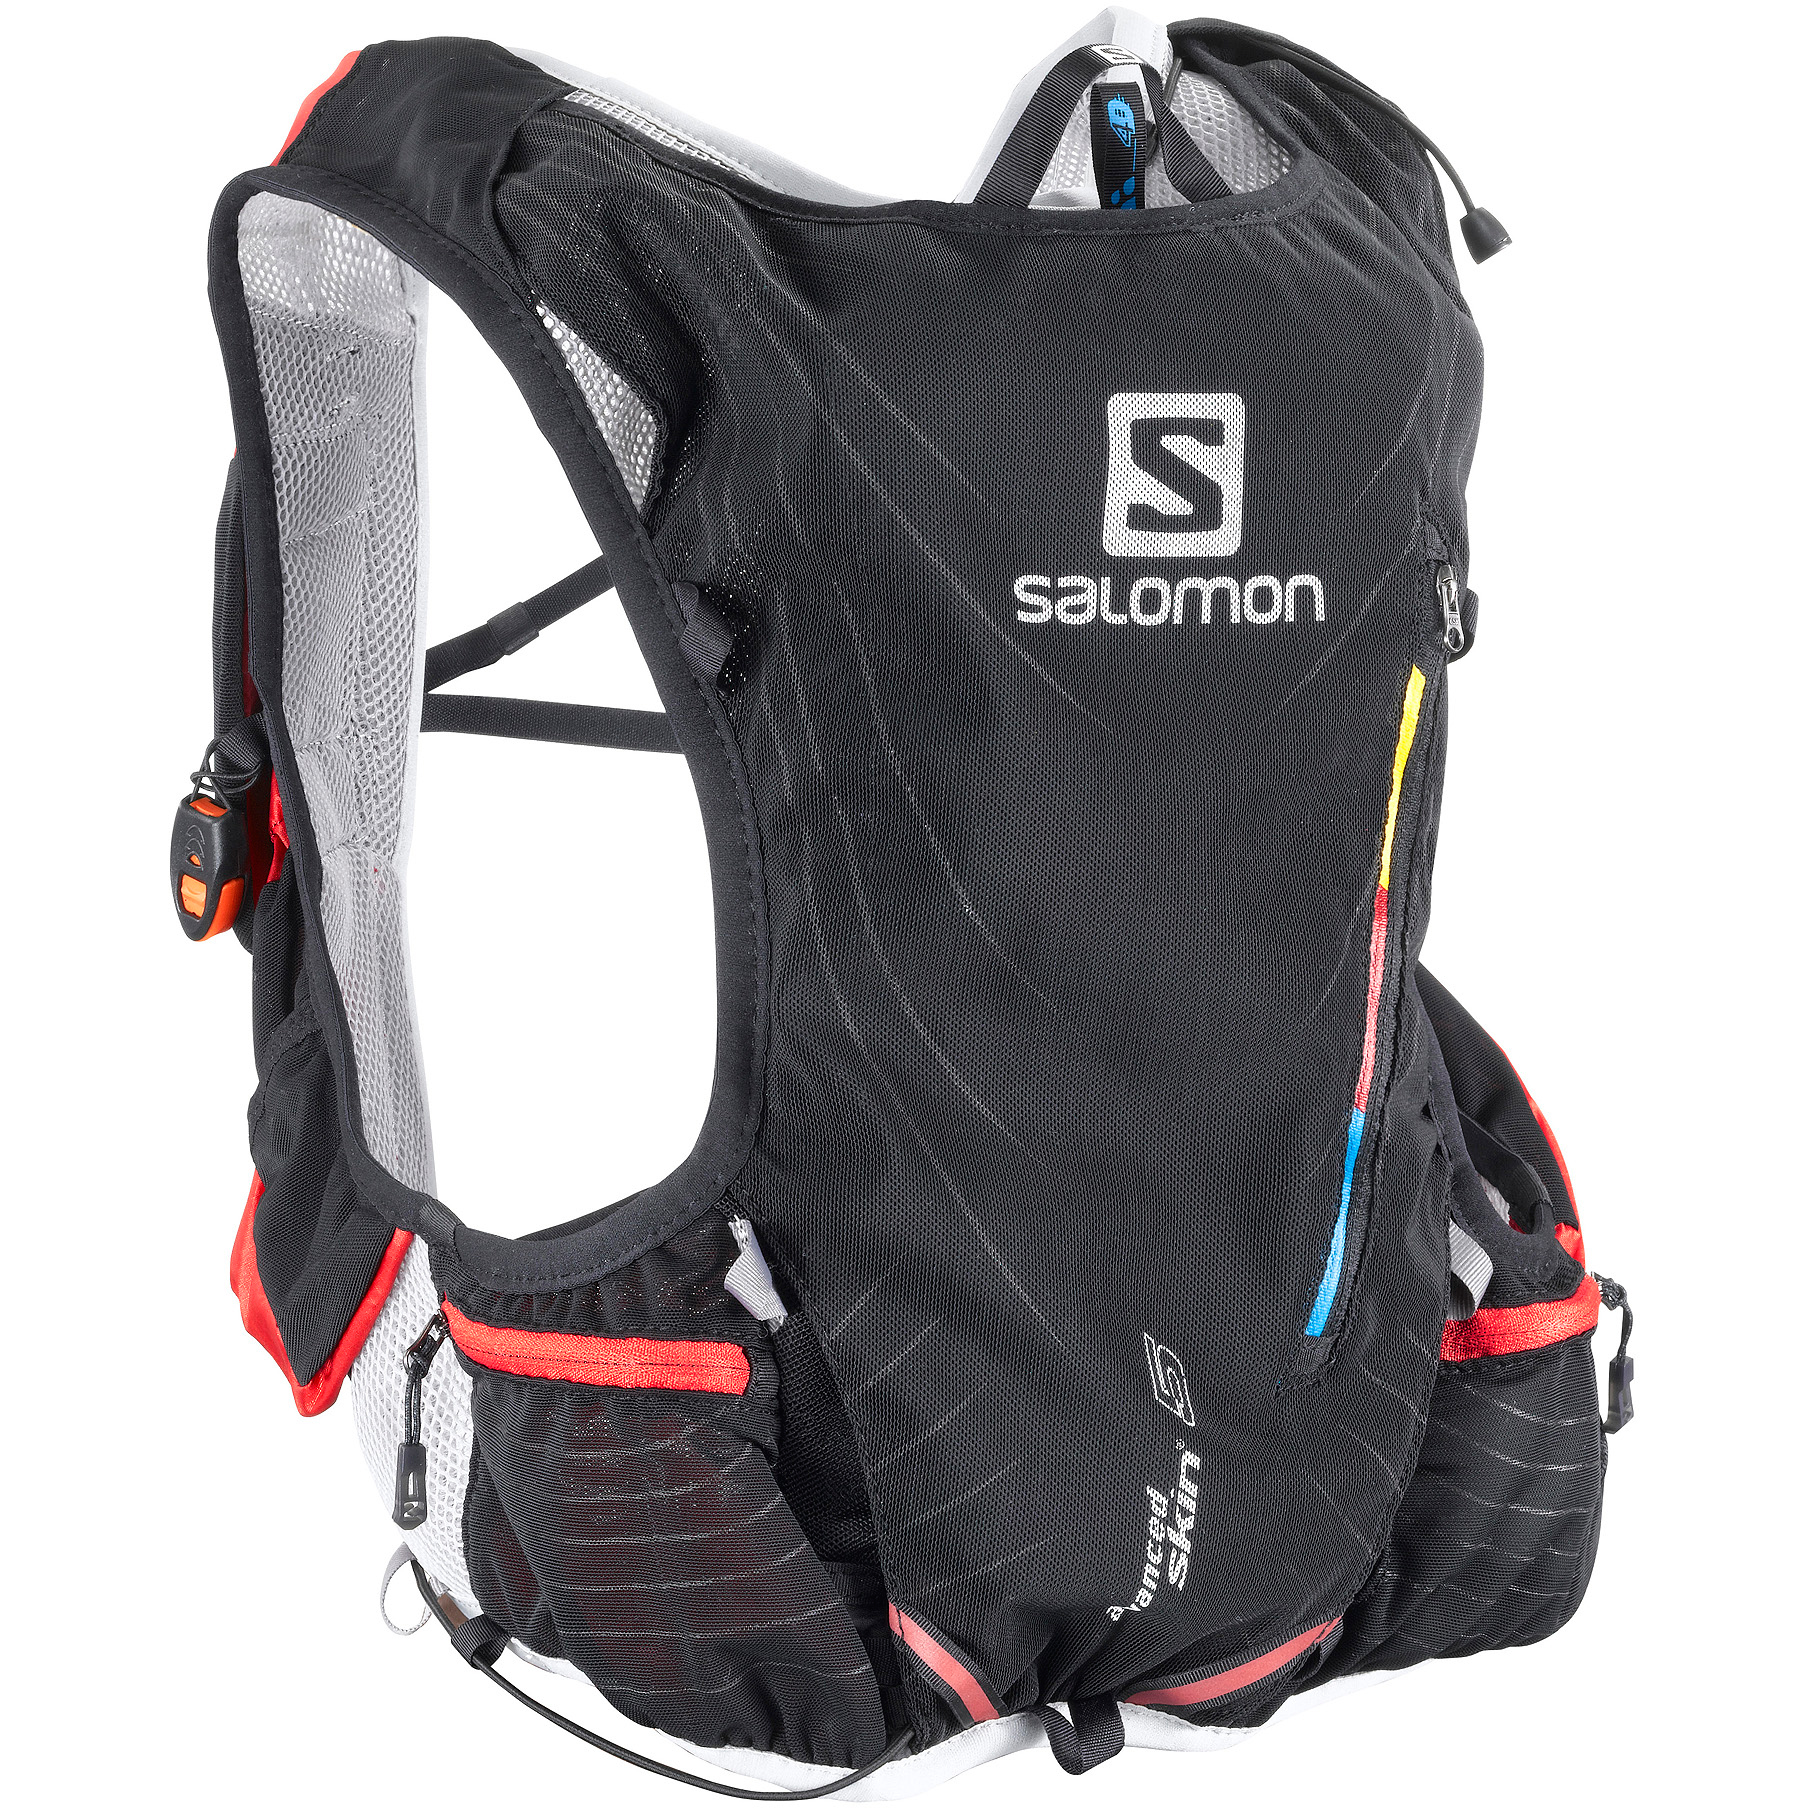 Salomon Advanced Skin S-Lab Hydration System 2013